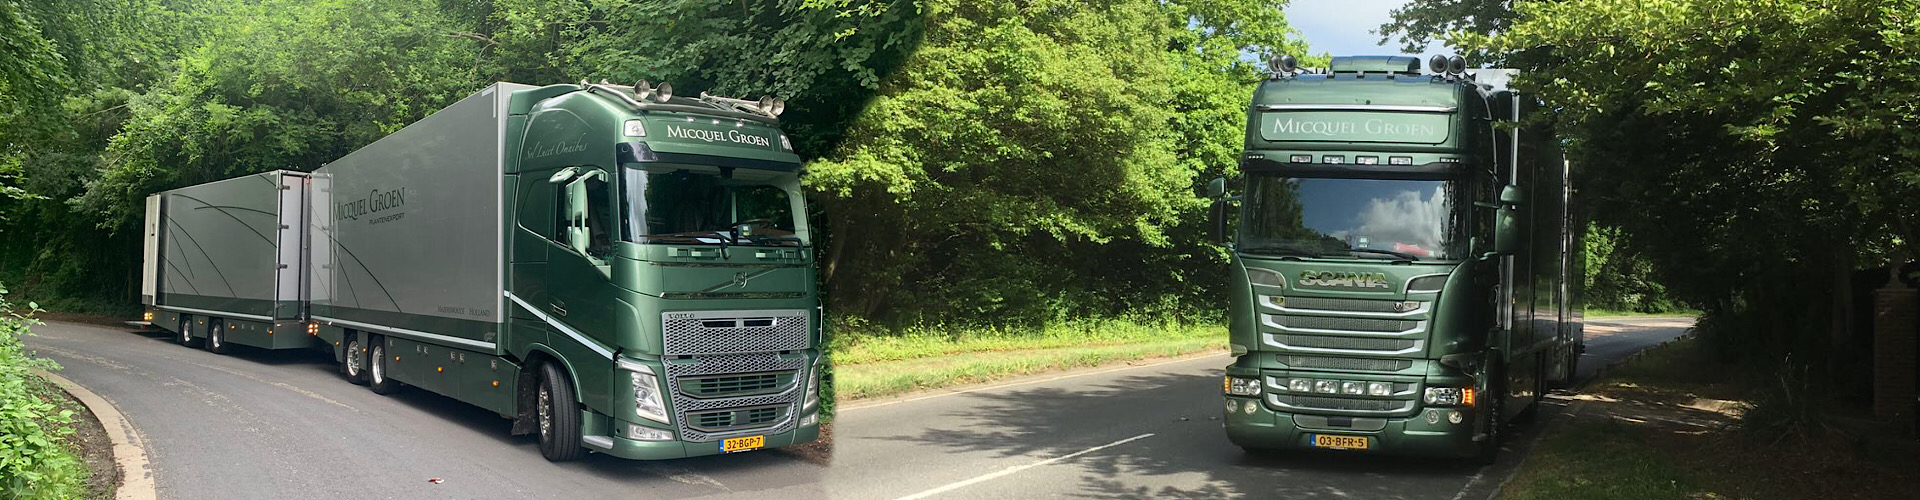 Own lorries used by regular qualified drivers.